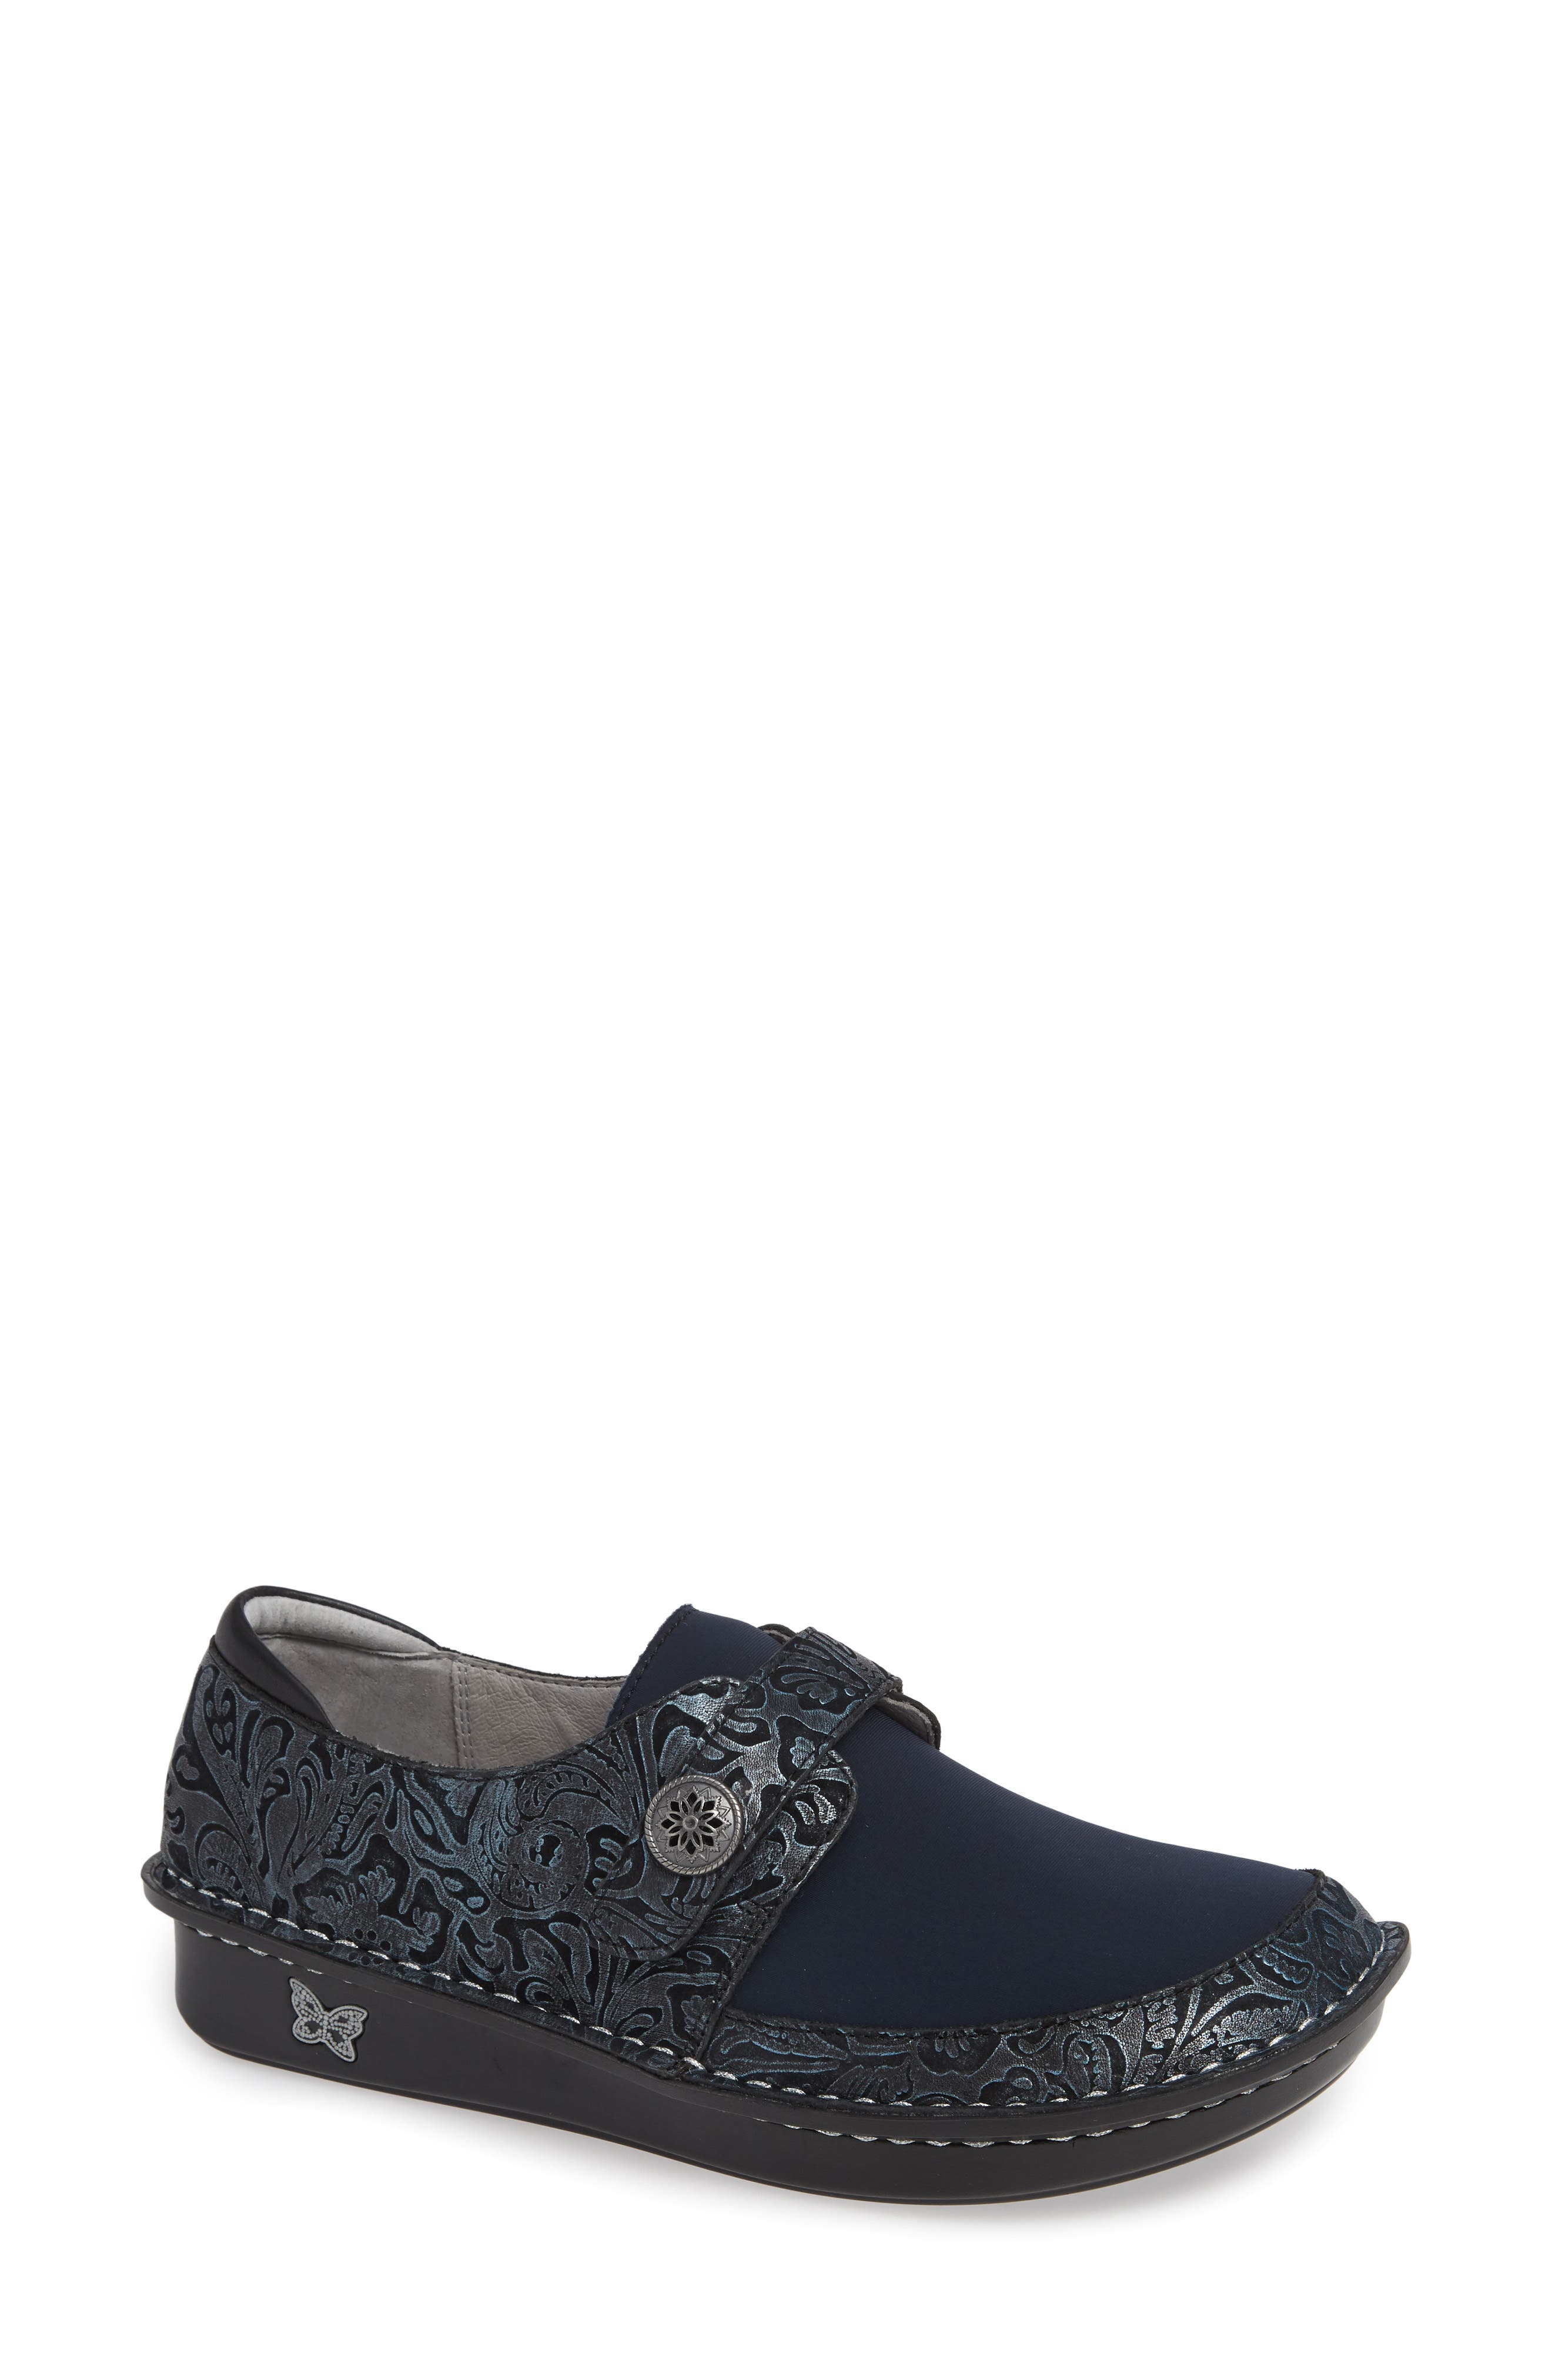 ALEGRIA, Brenna Slip-On, Main thumbnail 1, color, NAVY SWISH LEATHER